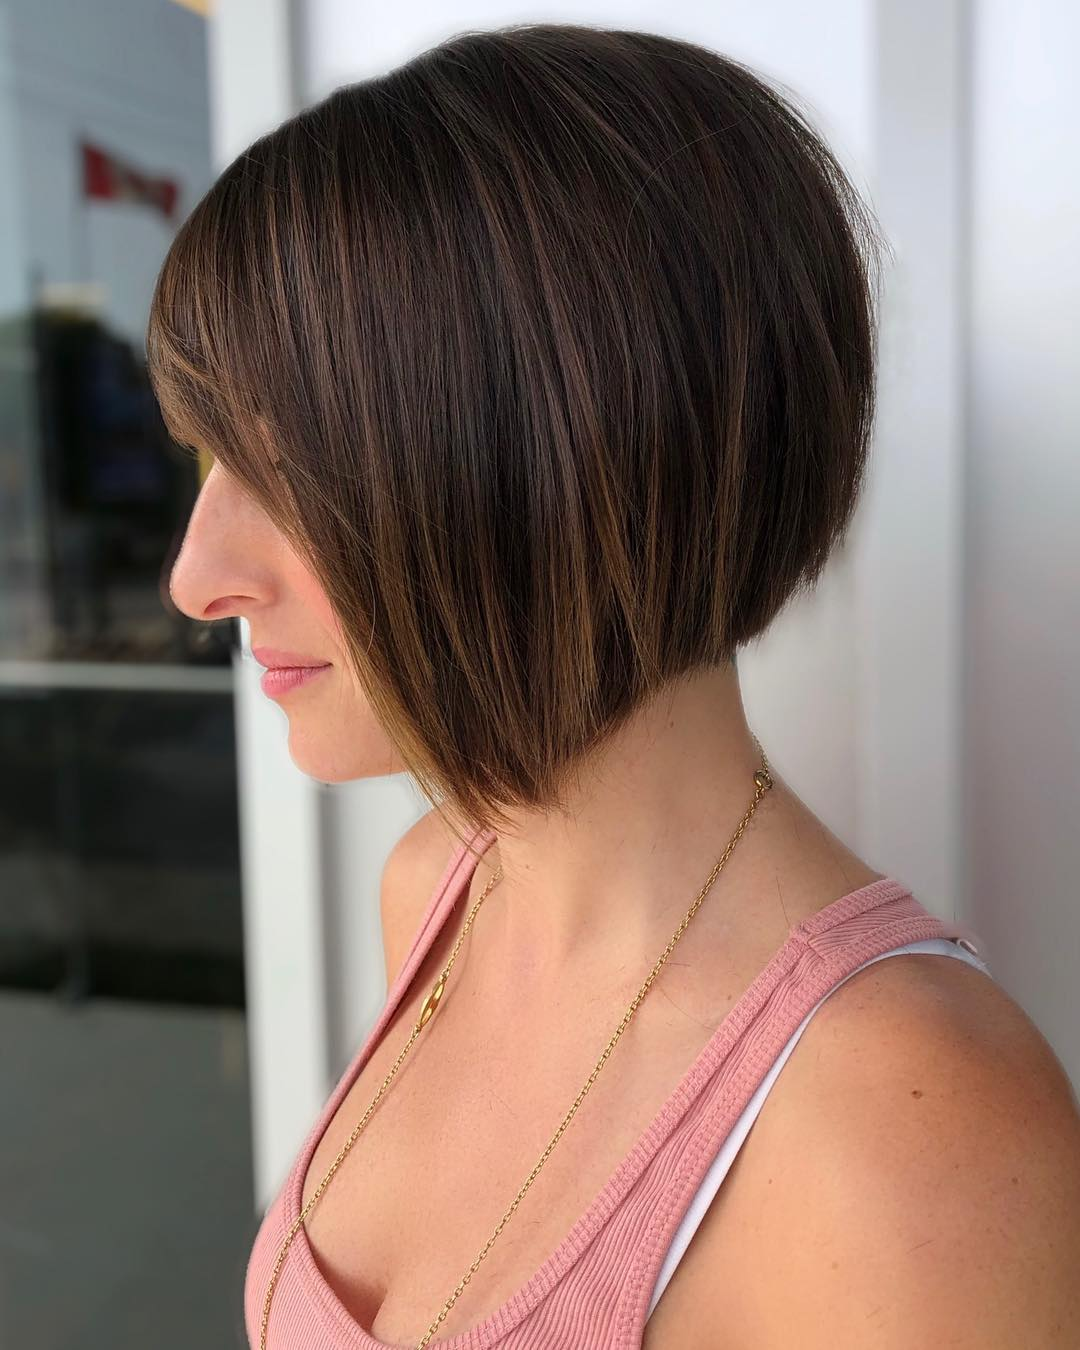 Bob with bangs and Subtle Highlights